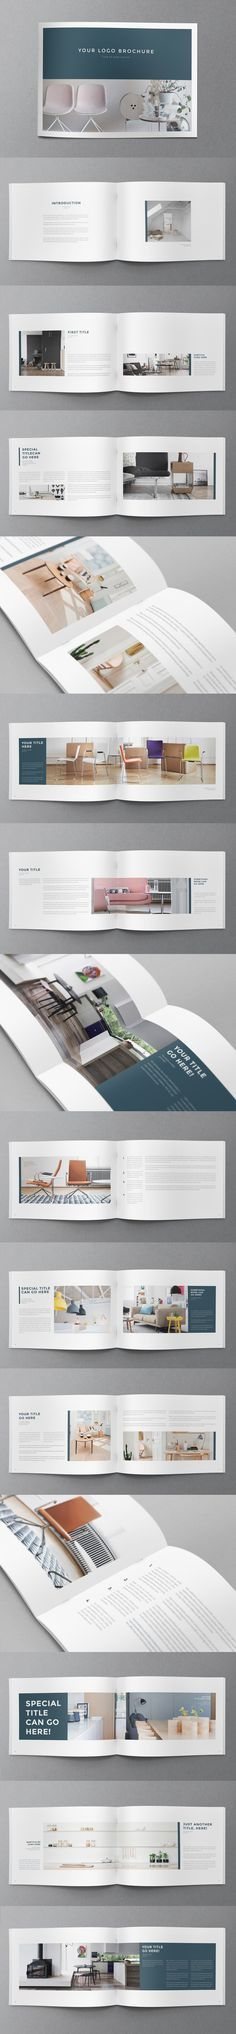 Interior Design Brochure Template  Brochures And Brochure Template